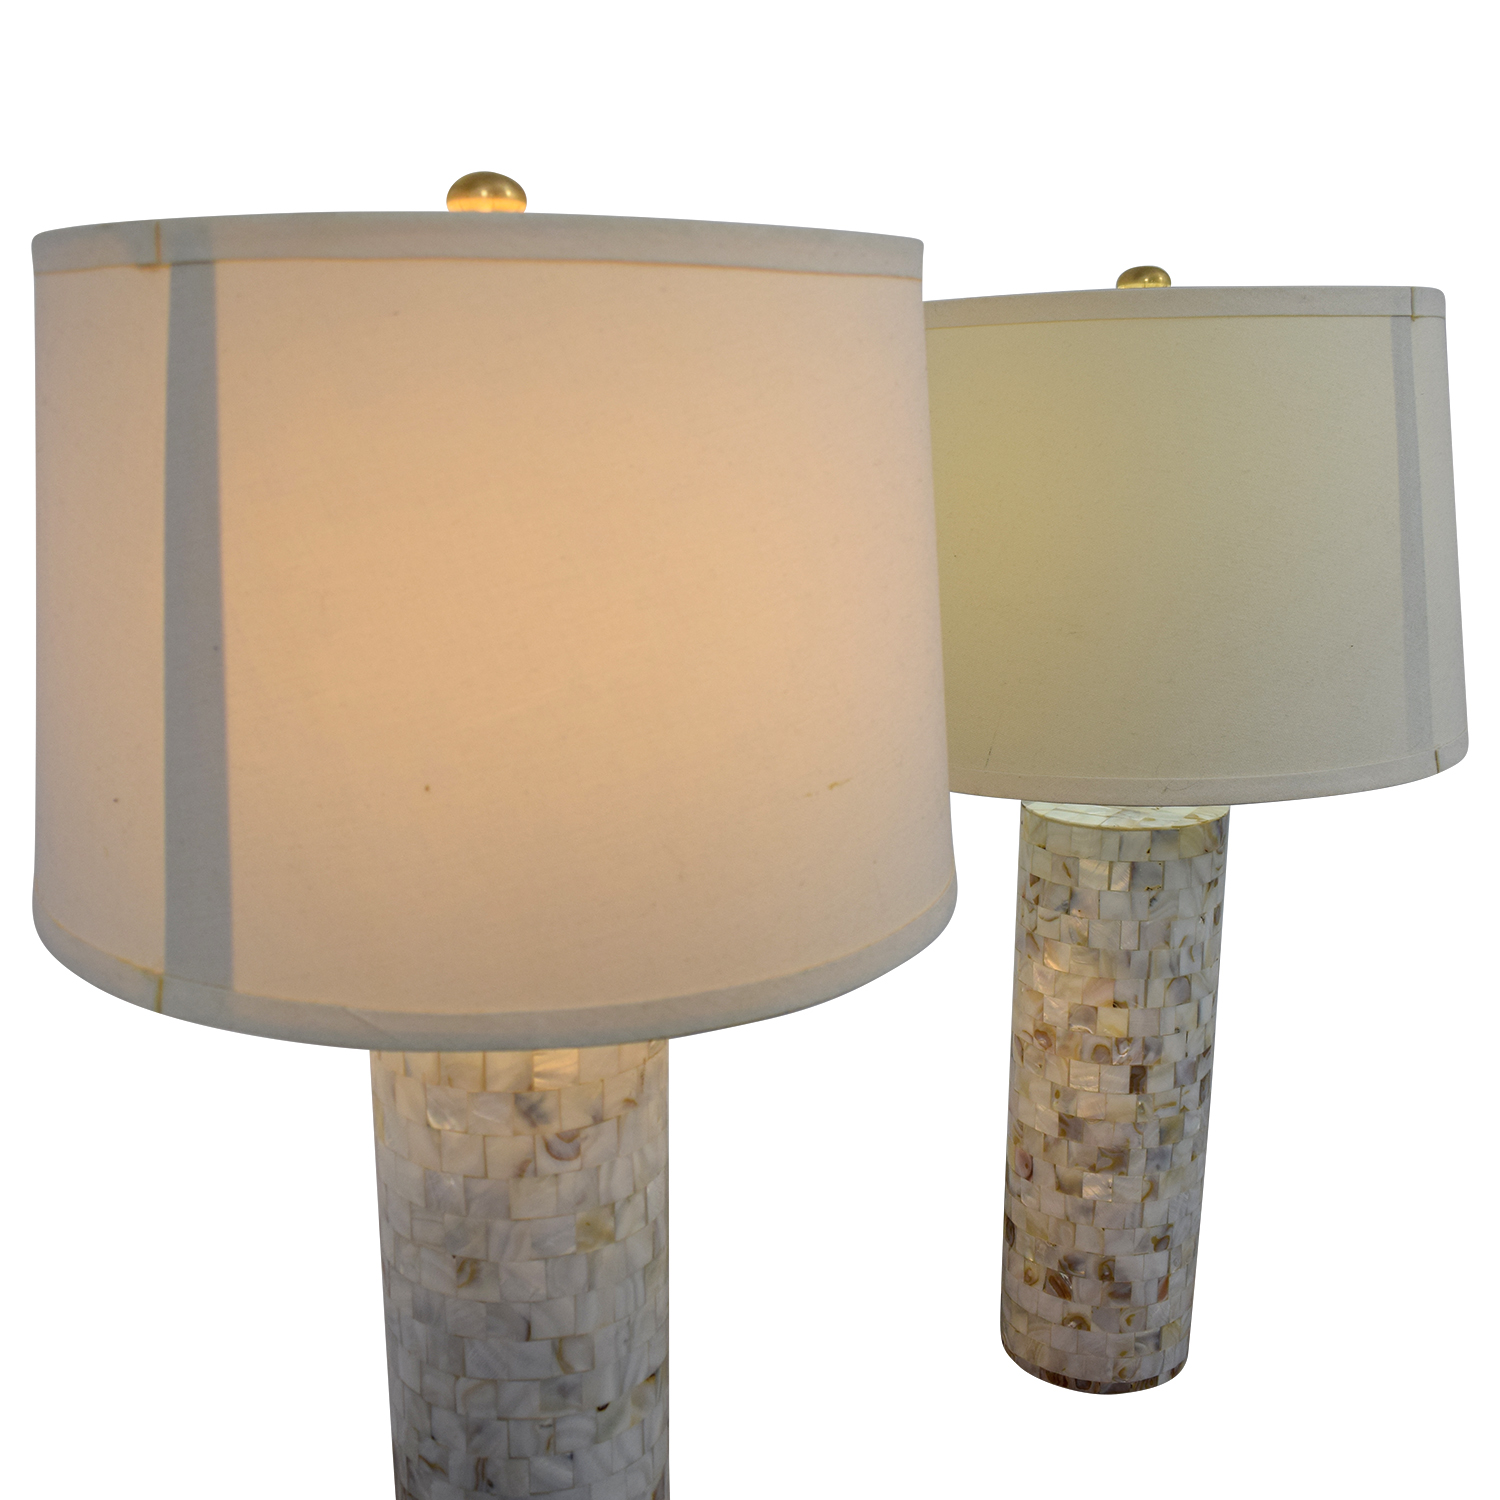 50 off mother of pearl table lamps decor mother of pearl table lamps lamps aloadofball Images